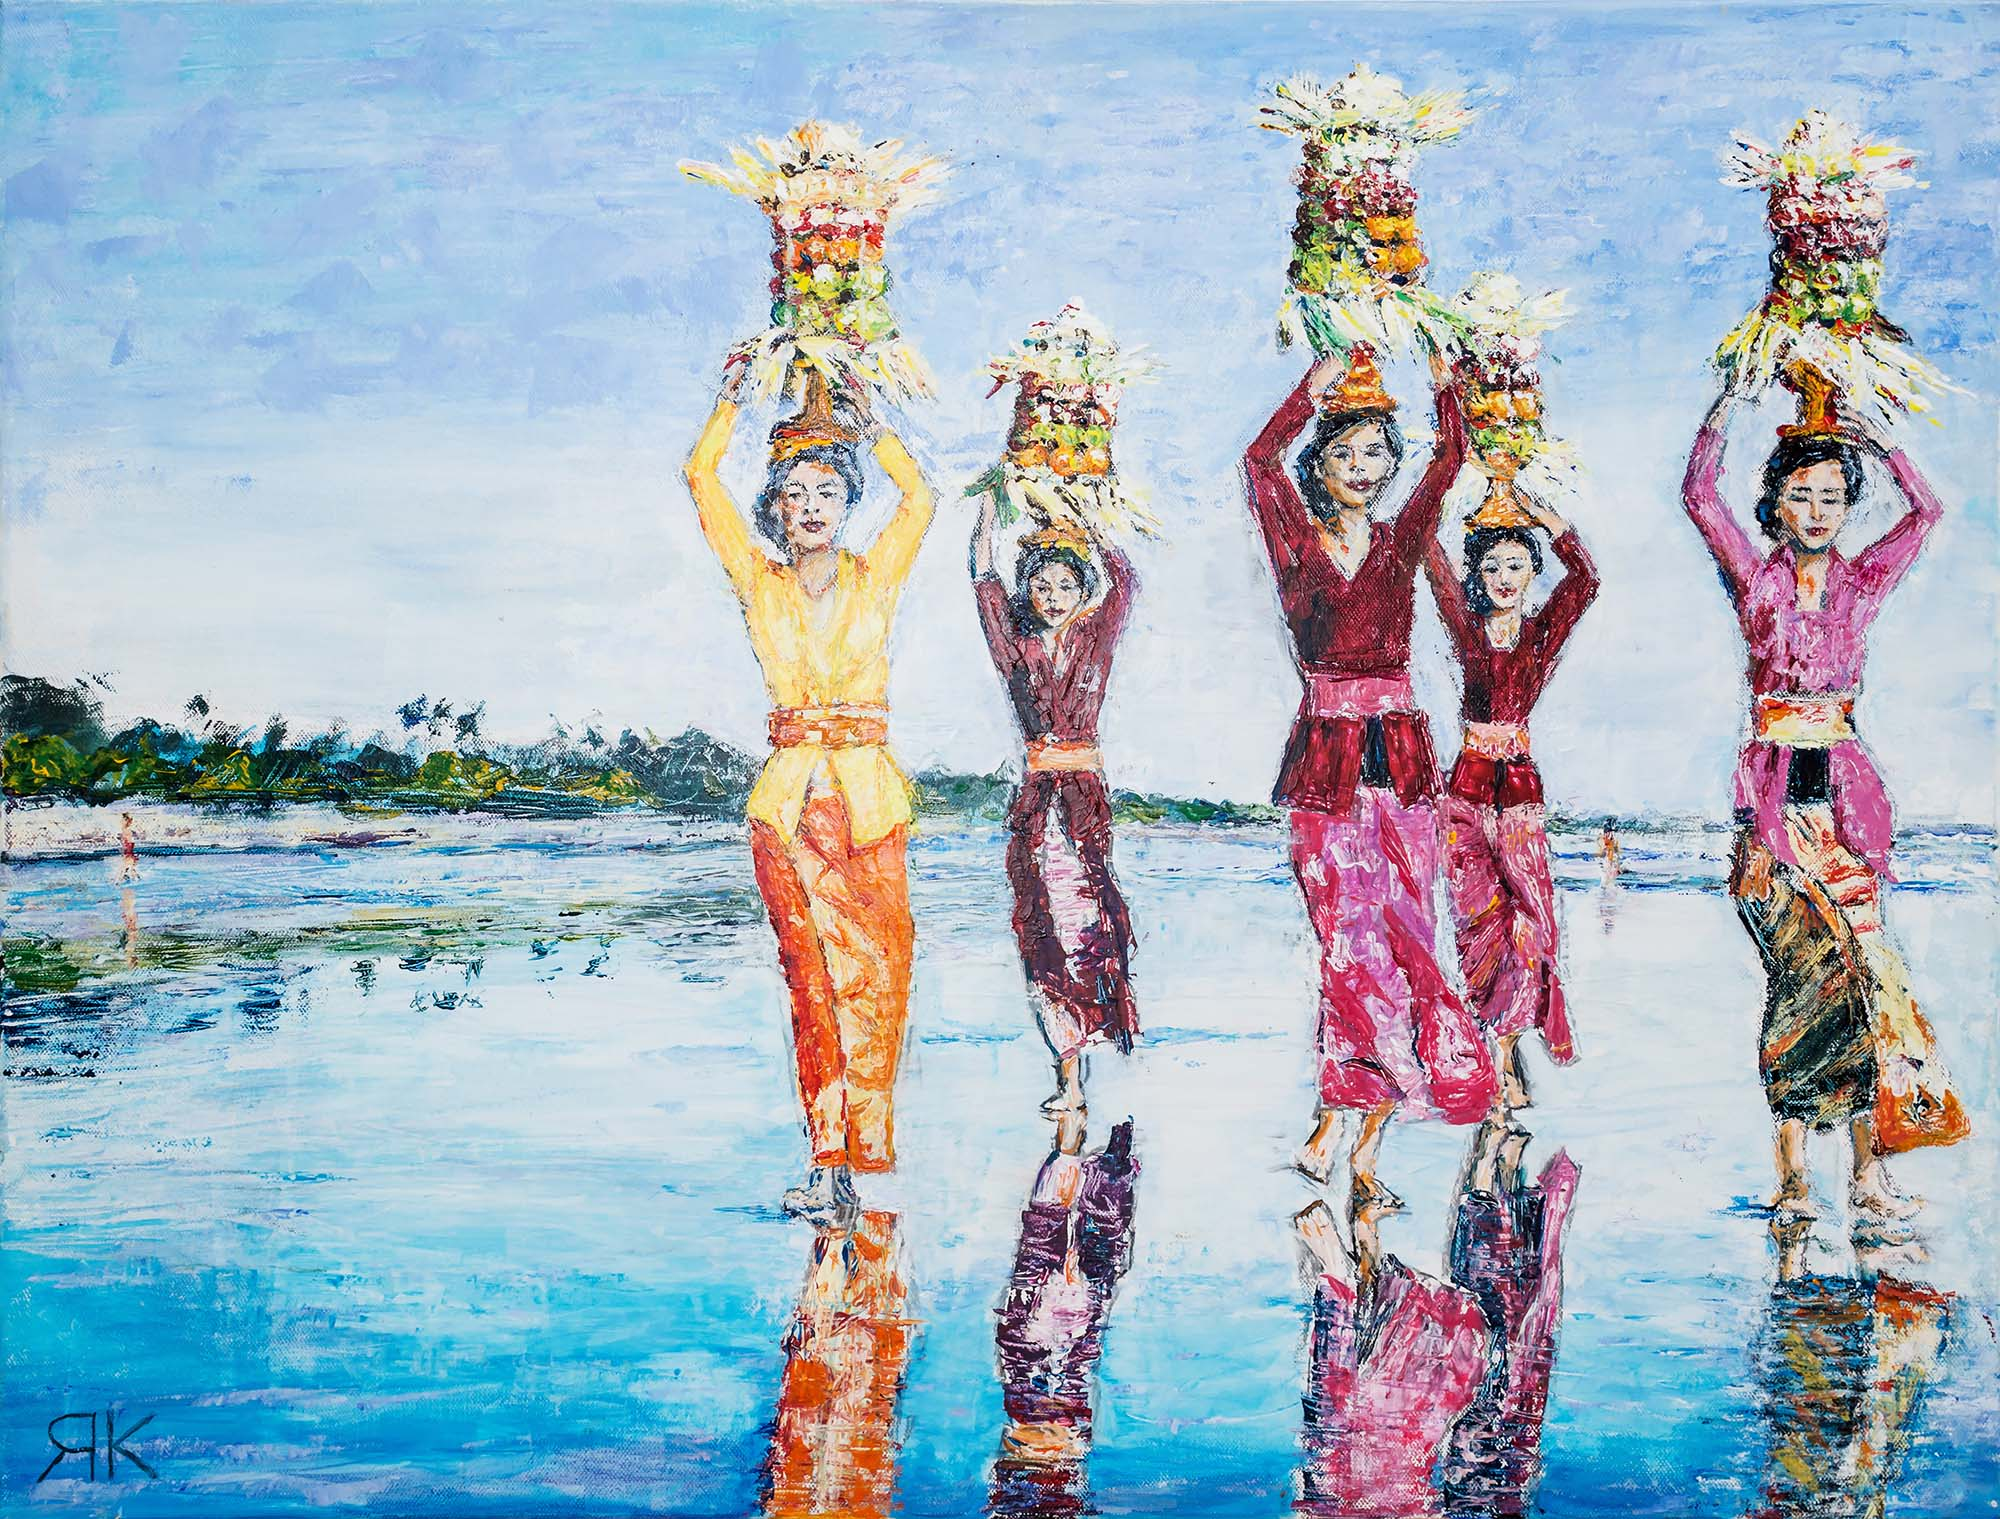 Bali women walking along the beach with offerings on their heads by Ria Kieboom